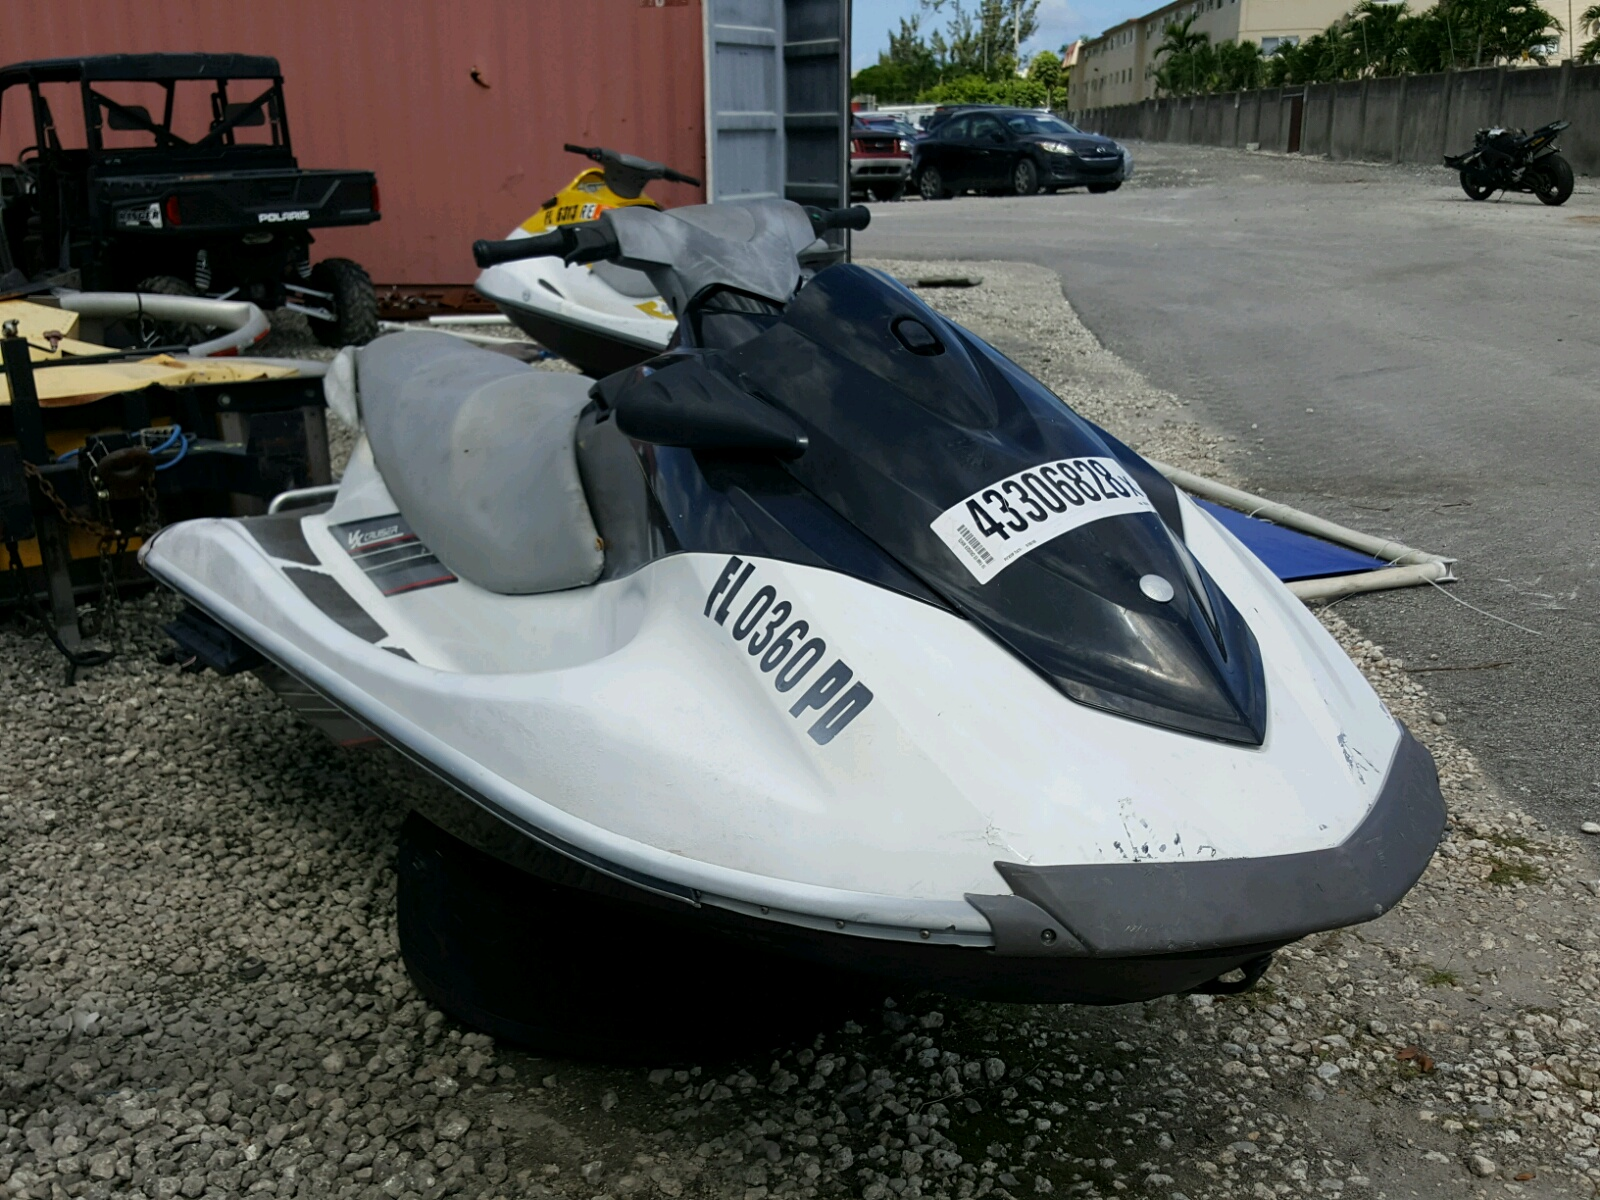 2010 Yamaha VX Cruiser for sale at Copart Miami FL Lot